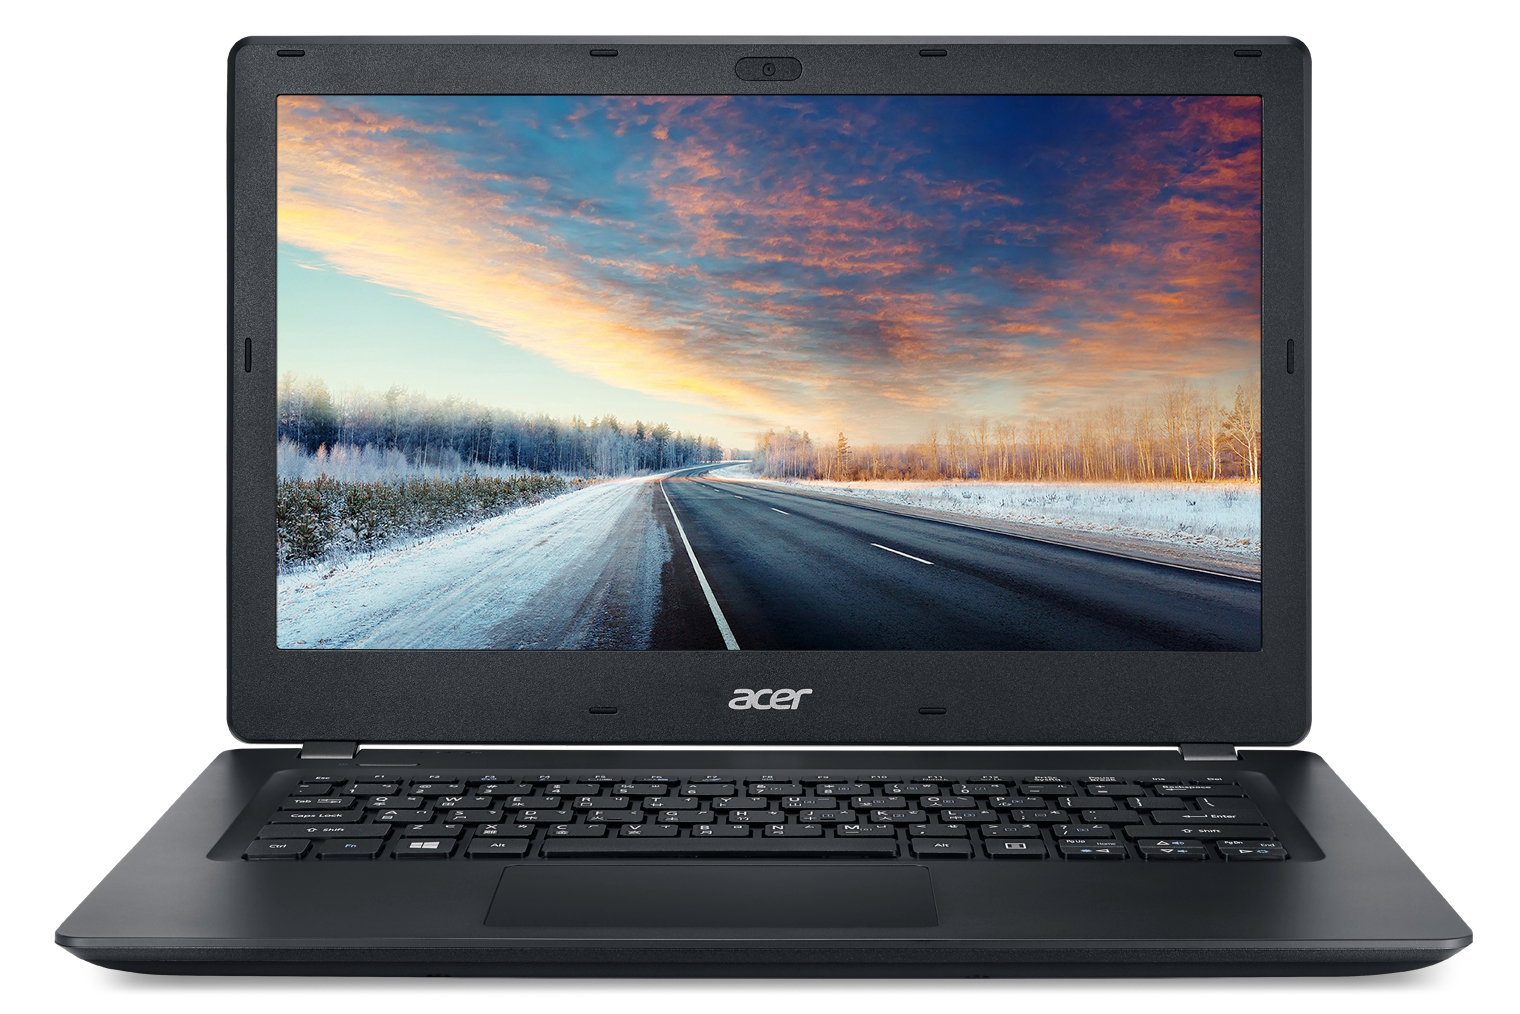 Acer TravelMate 14 inch Notebook PC Core i5 2.5GHz 4GB 500GB